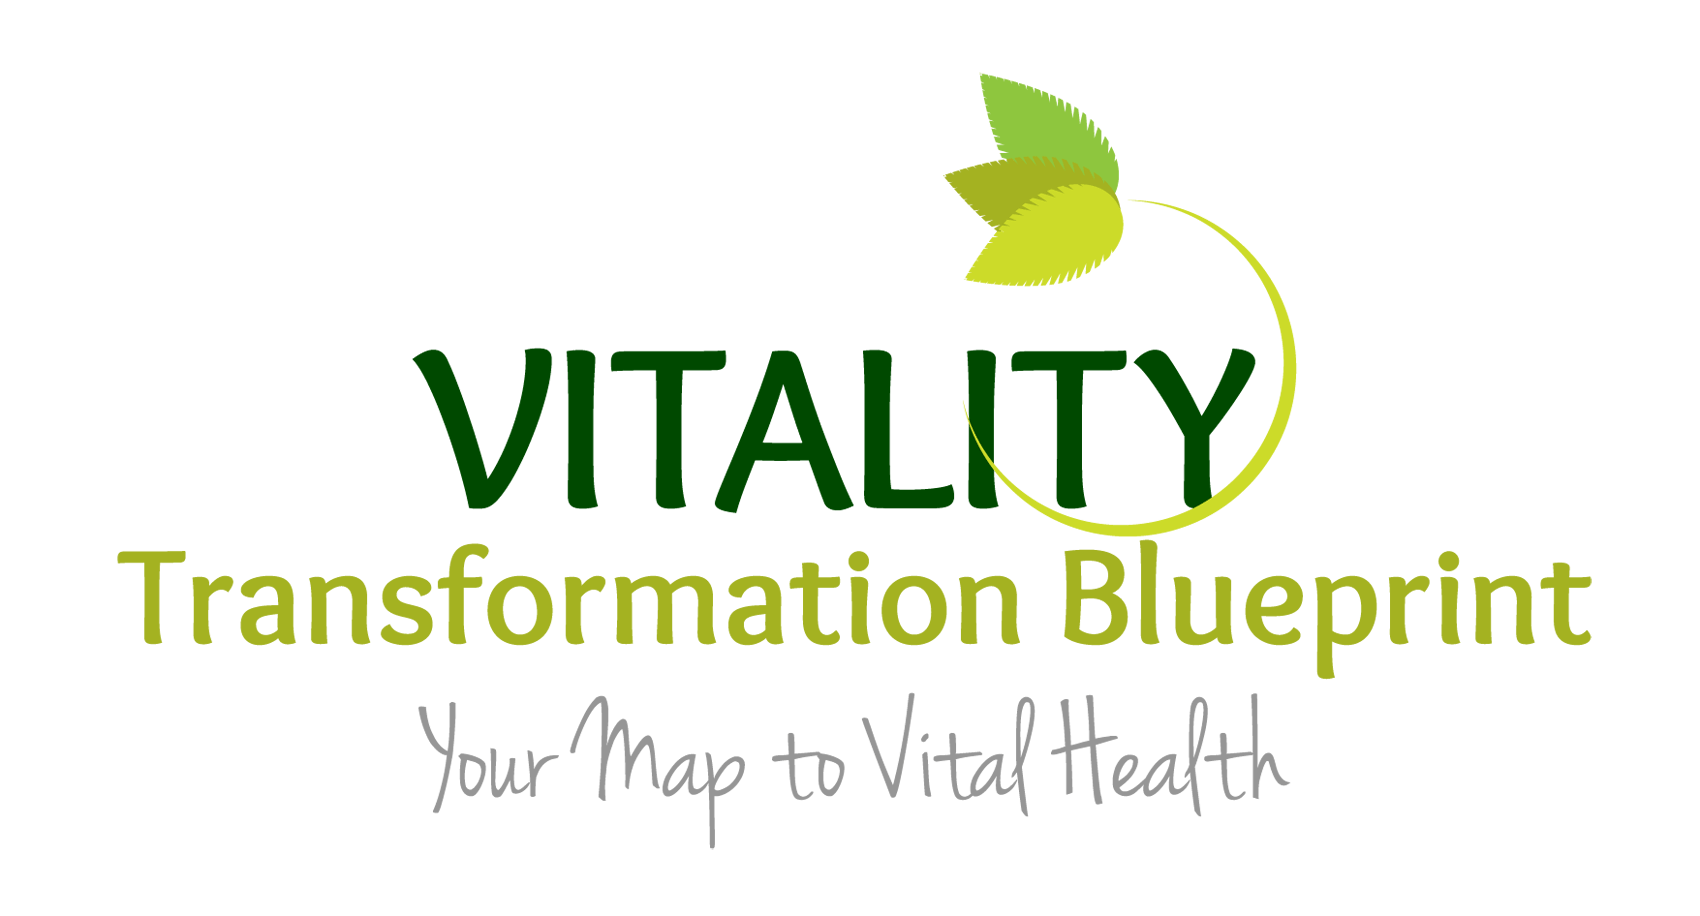 Vitality Transformation Blueprint Program